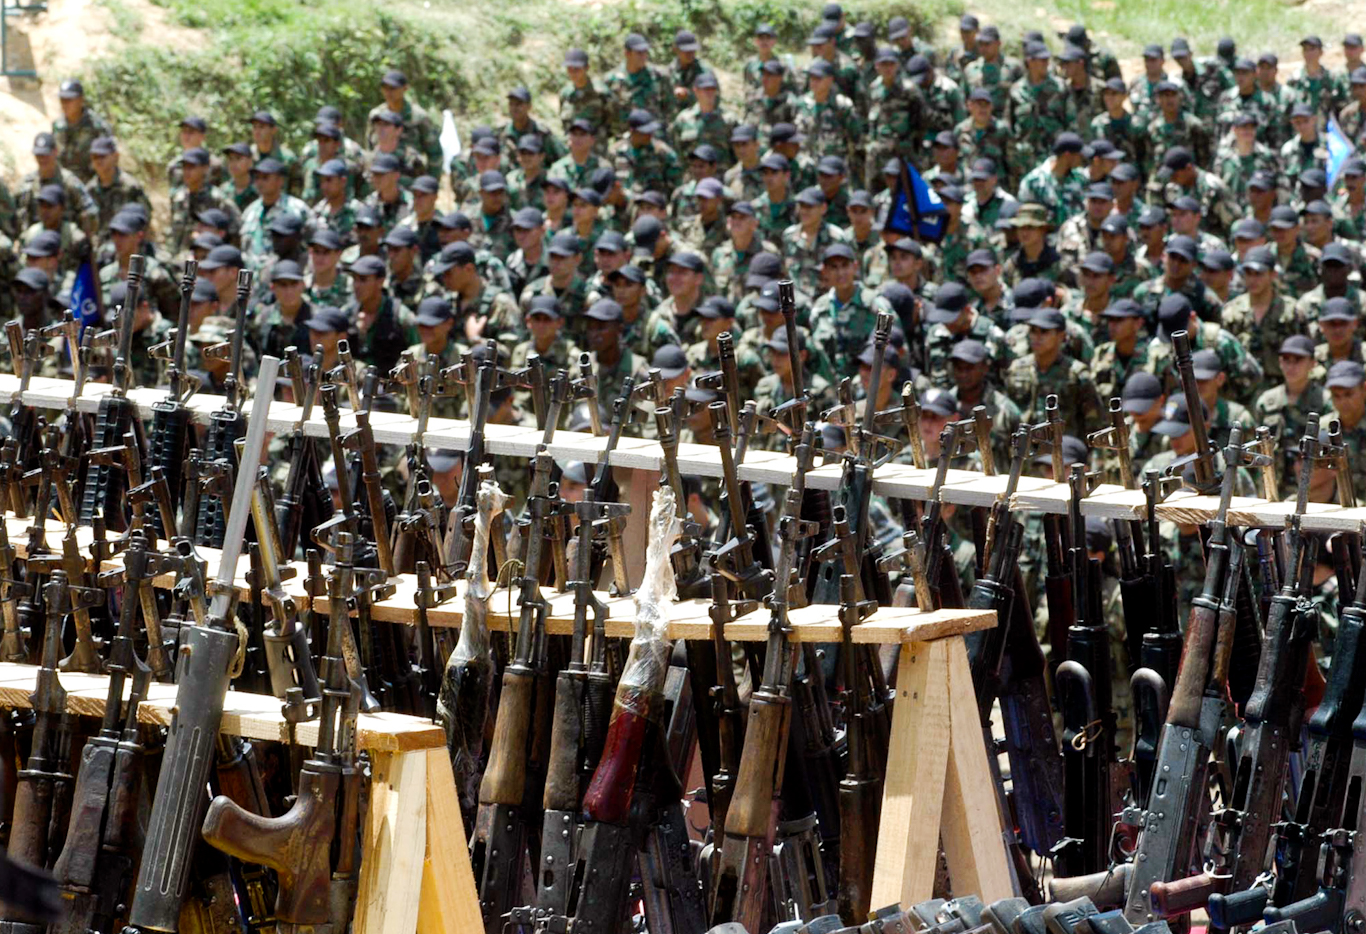 """FILE - In this Aug. 1, 2005 file photo, paramilitary fighters from the """"Heroes of Granada"""" faction of the United Self-Defense Forces of Colombia, or AUC, attend a demobilization ceremony in Cristales, Colombia. Hundreds of right-wing paramilitaries are expected to walk free from prison beginning in March 2014 after serving eight-year sentences for crimes that normally carry more than triple the prison terms. Their lenient sentences were enshrined in a 2005 """"Justice and Peace"""" law that provided a legal framework for the militias' supposed dismantling under a peace deal with the government of then-President Alvaro Uribe. (AP Photo/Luis Benavides, File)"""